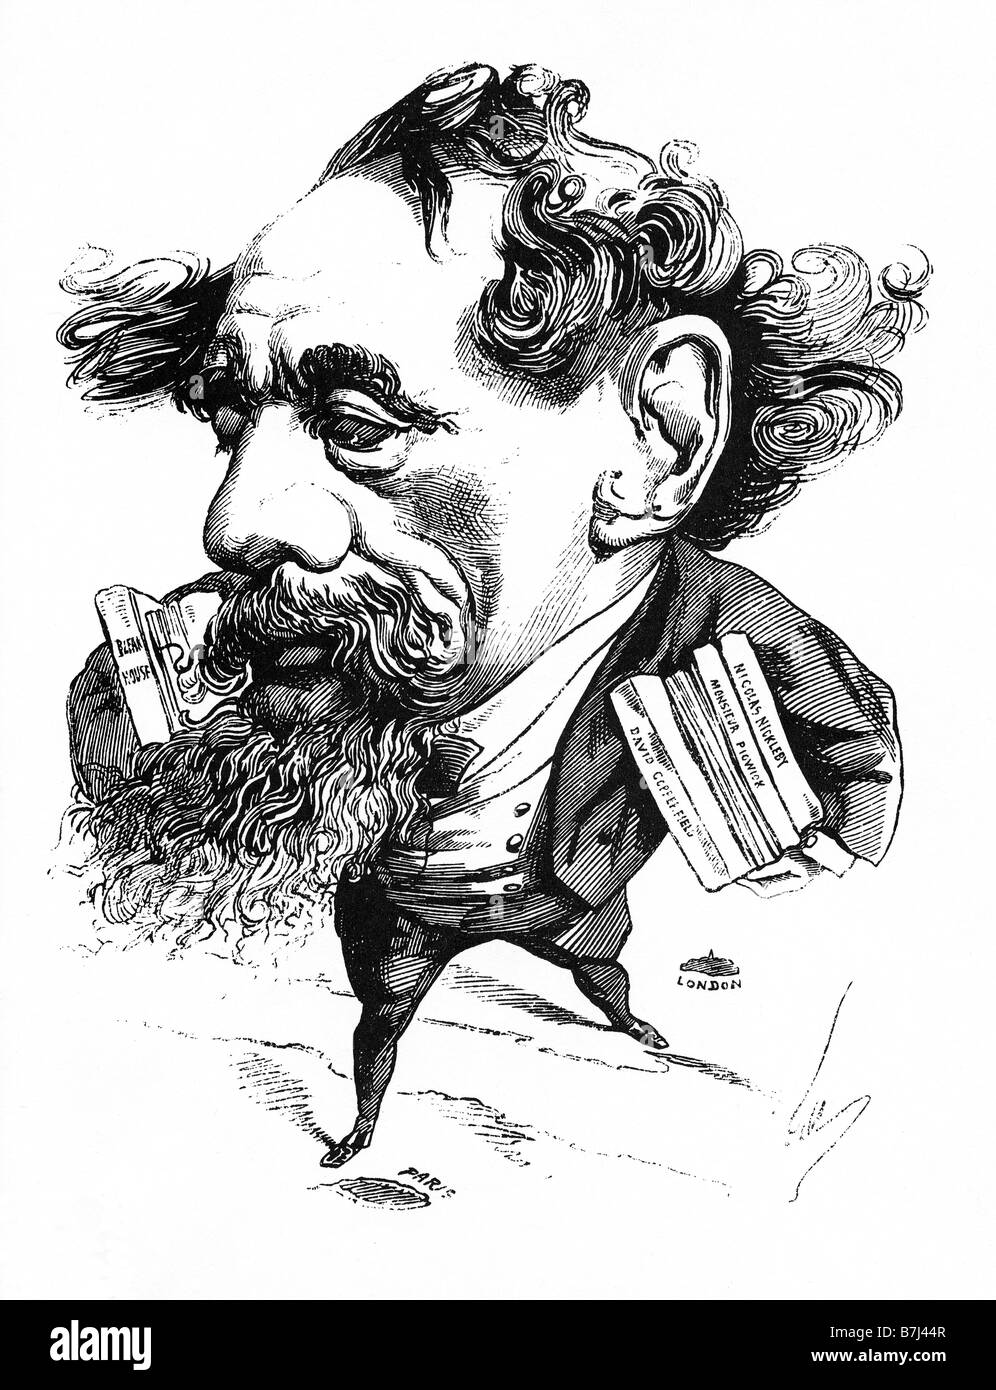 charles dickens caricature of the great victorian author by  charles dickens 1868 caricature of the great victorian author by andre gill as he essays a trip from london to paris